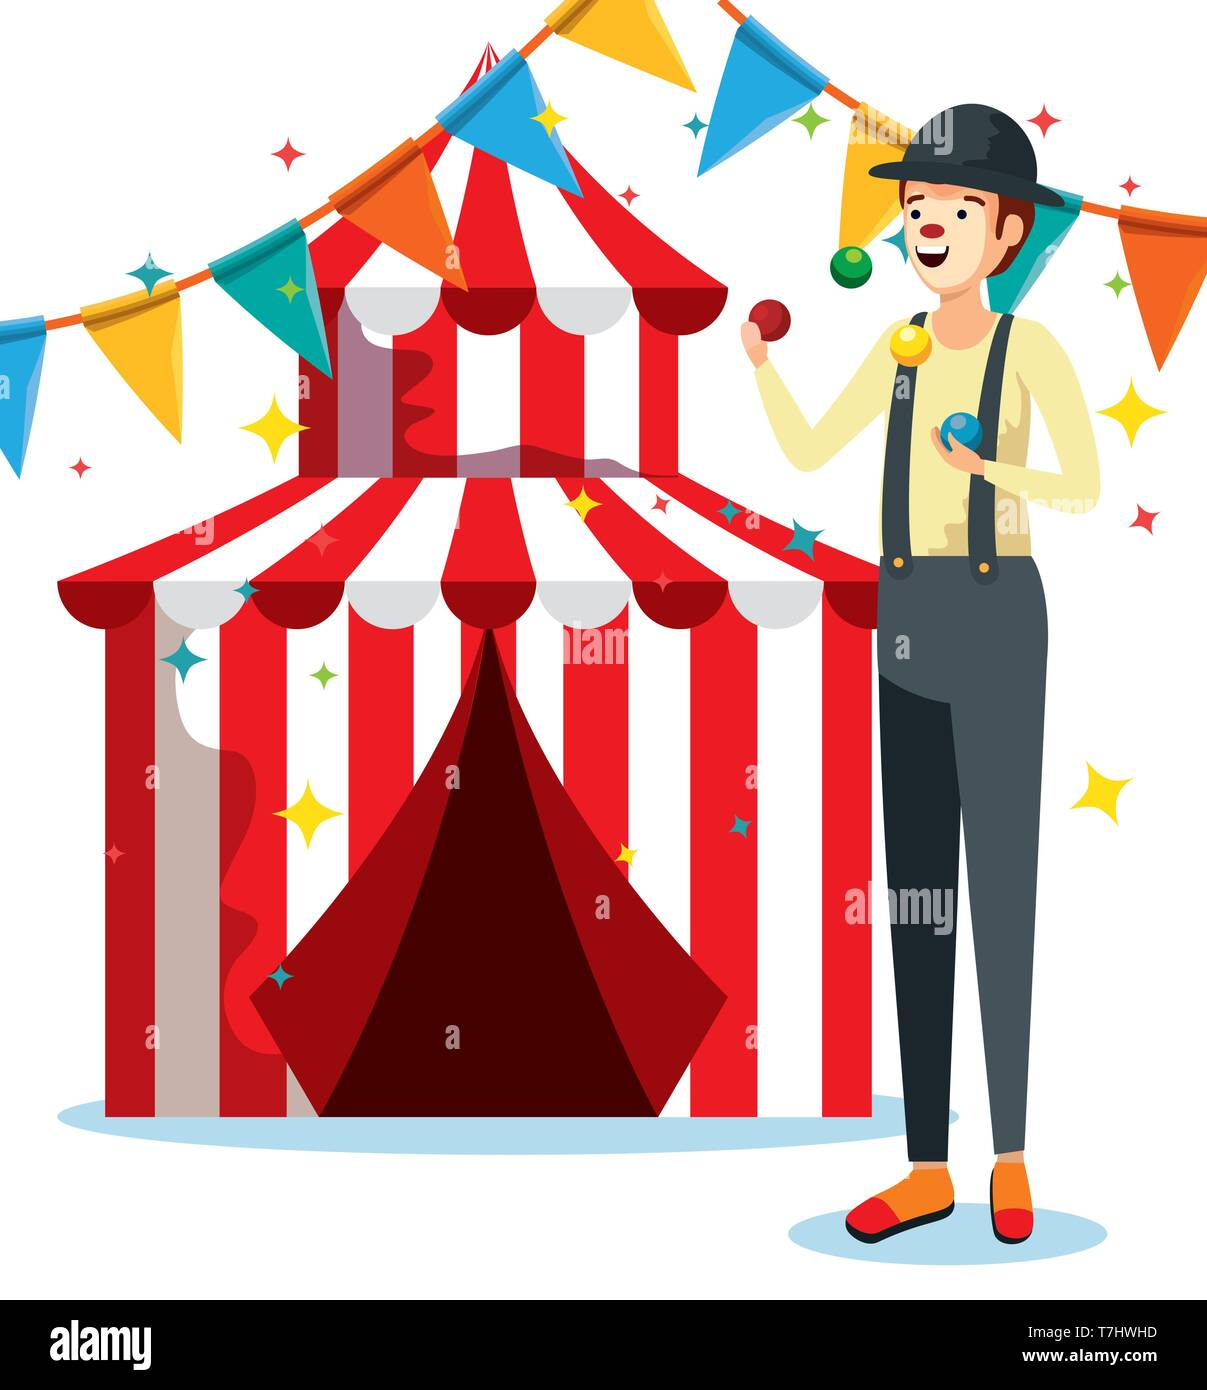 man mime costume with circus and party banner - Stock Image